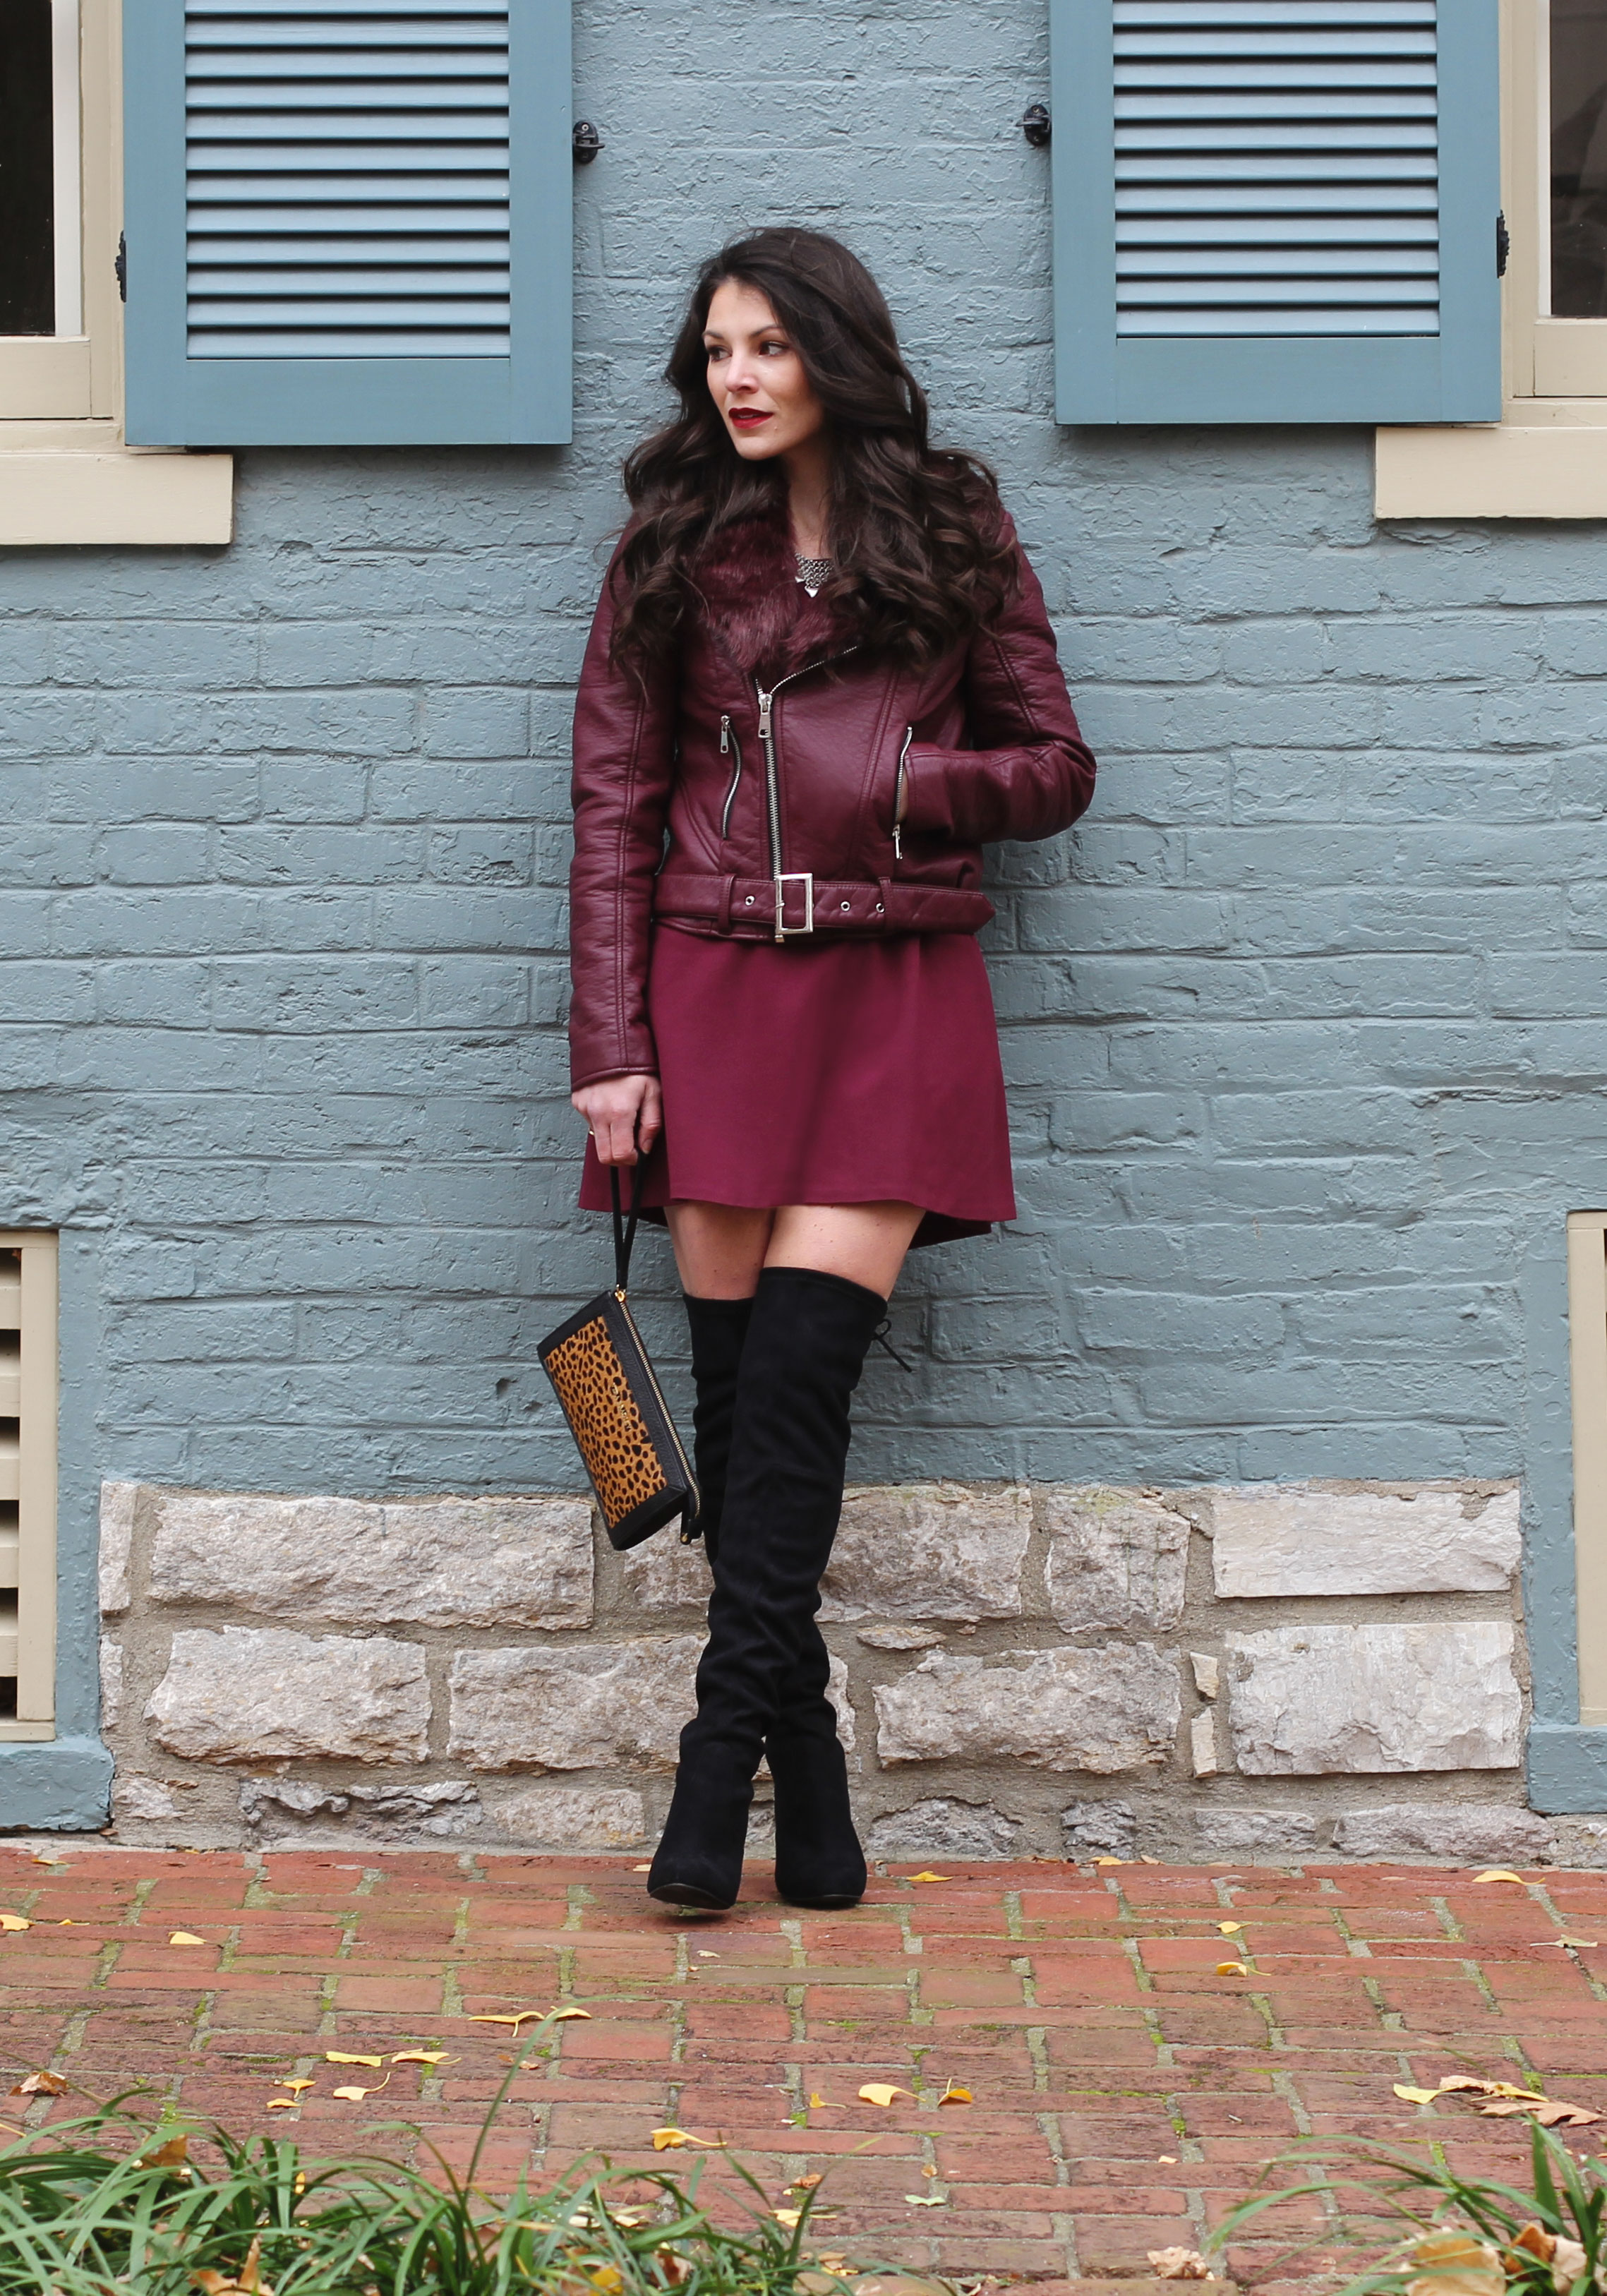 Holiday Outfit, Winter Fashion, Maroon Moto Jacket, Marsala Skater Dress, Steve Madden Gorgeous Over The Knee Boots, Vera Bradley Calf Hair Wristlet, Jenny Bird Necklace